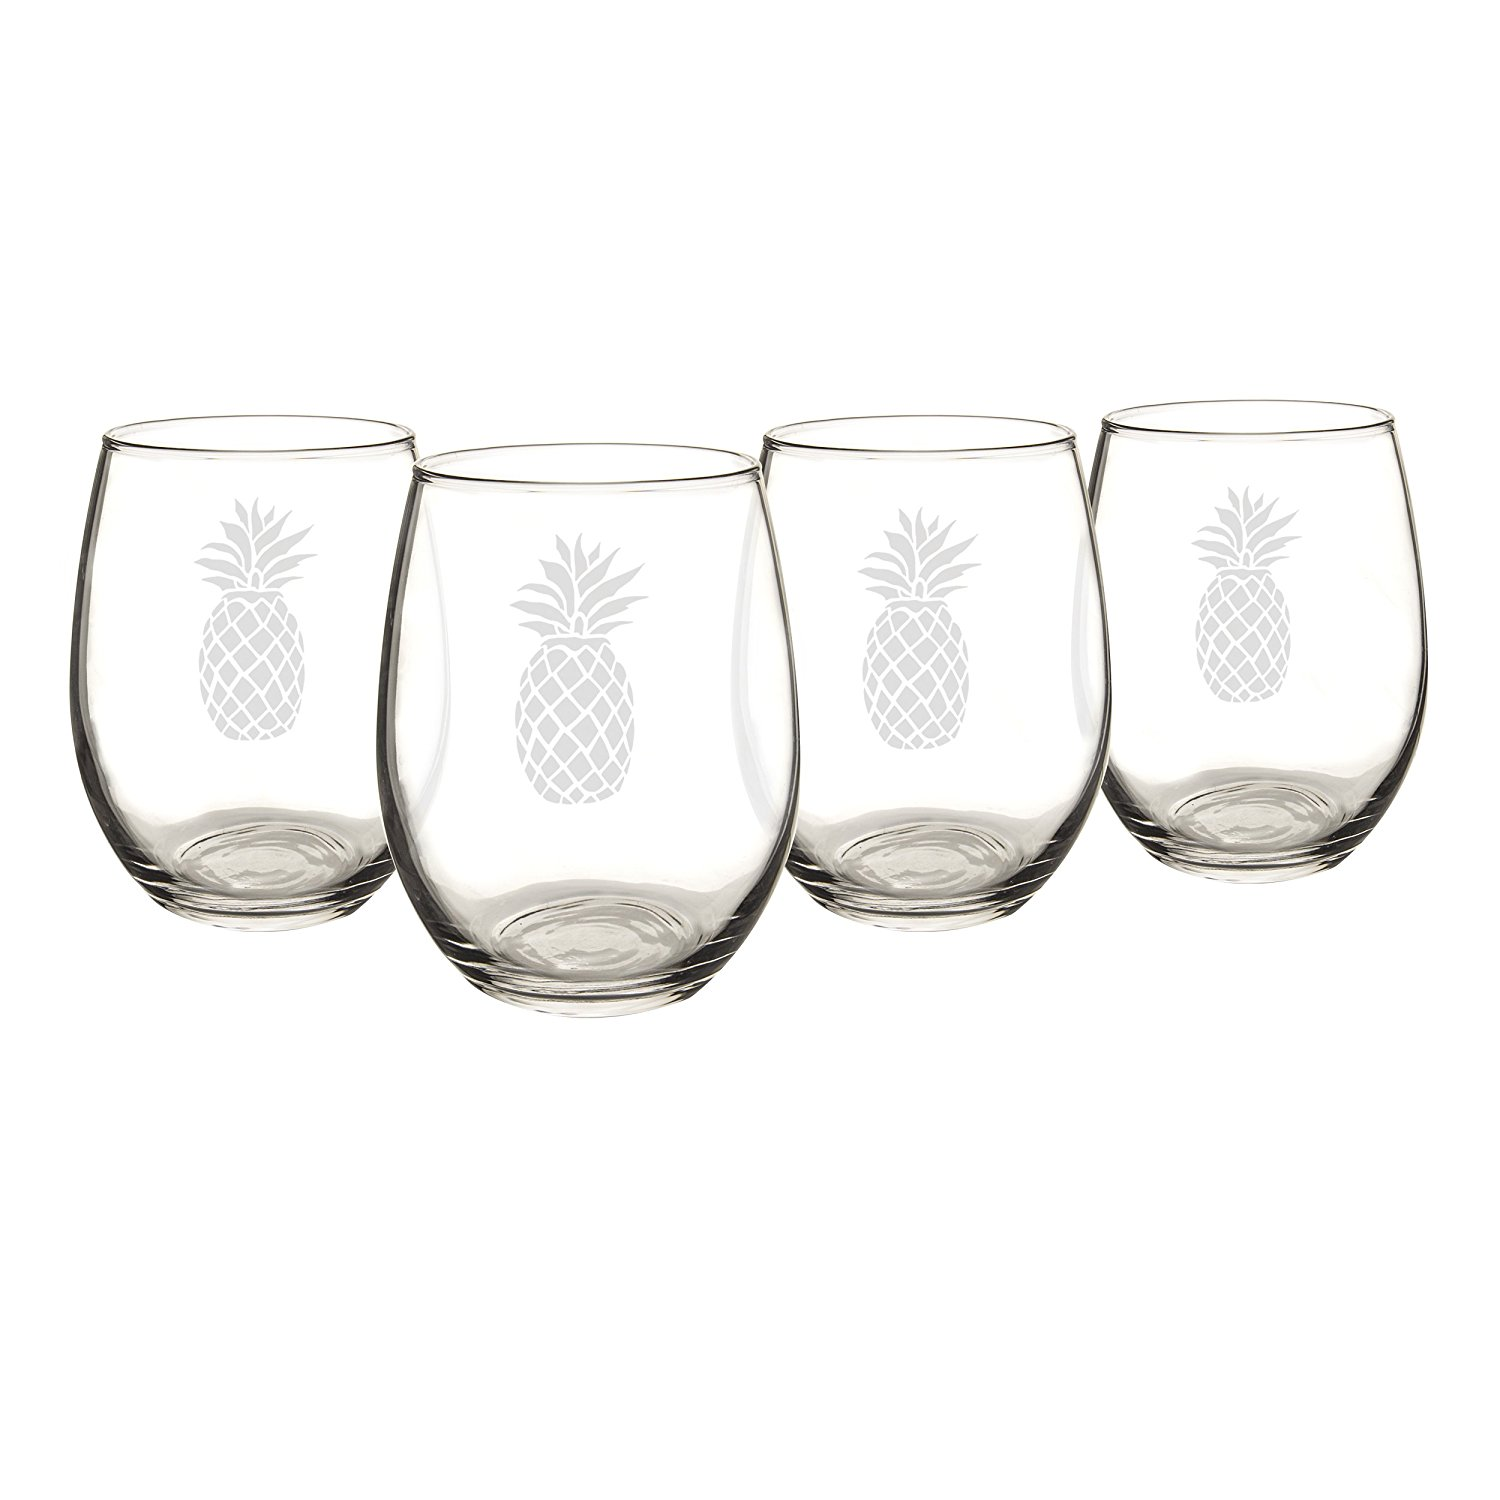 Beautiful etched wineglasses are perfect for this summer if you are looking for pineapple decor!